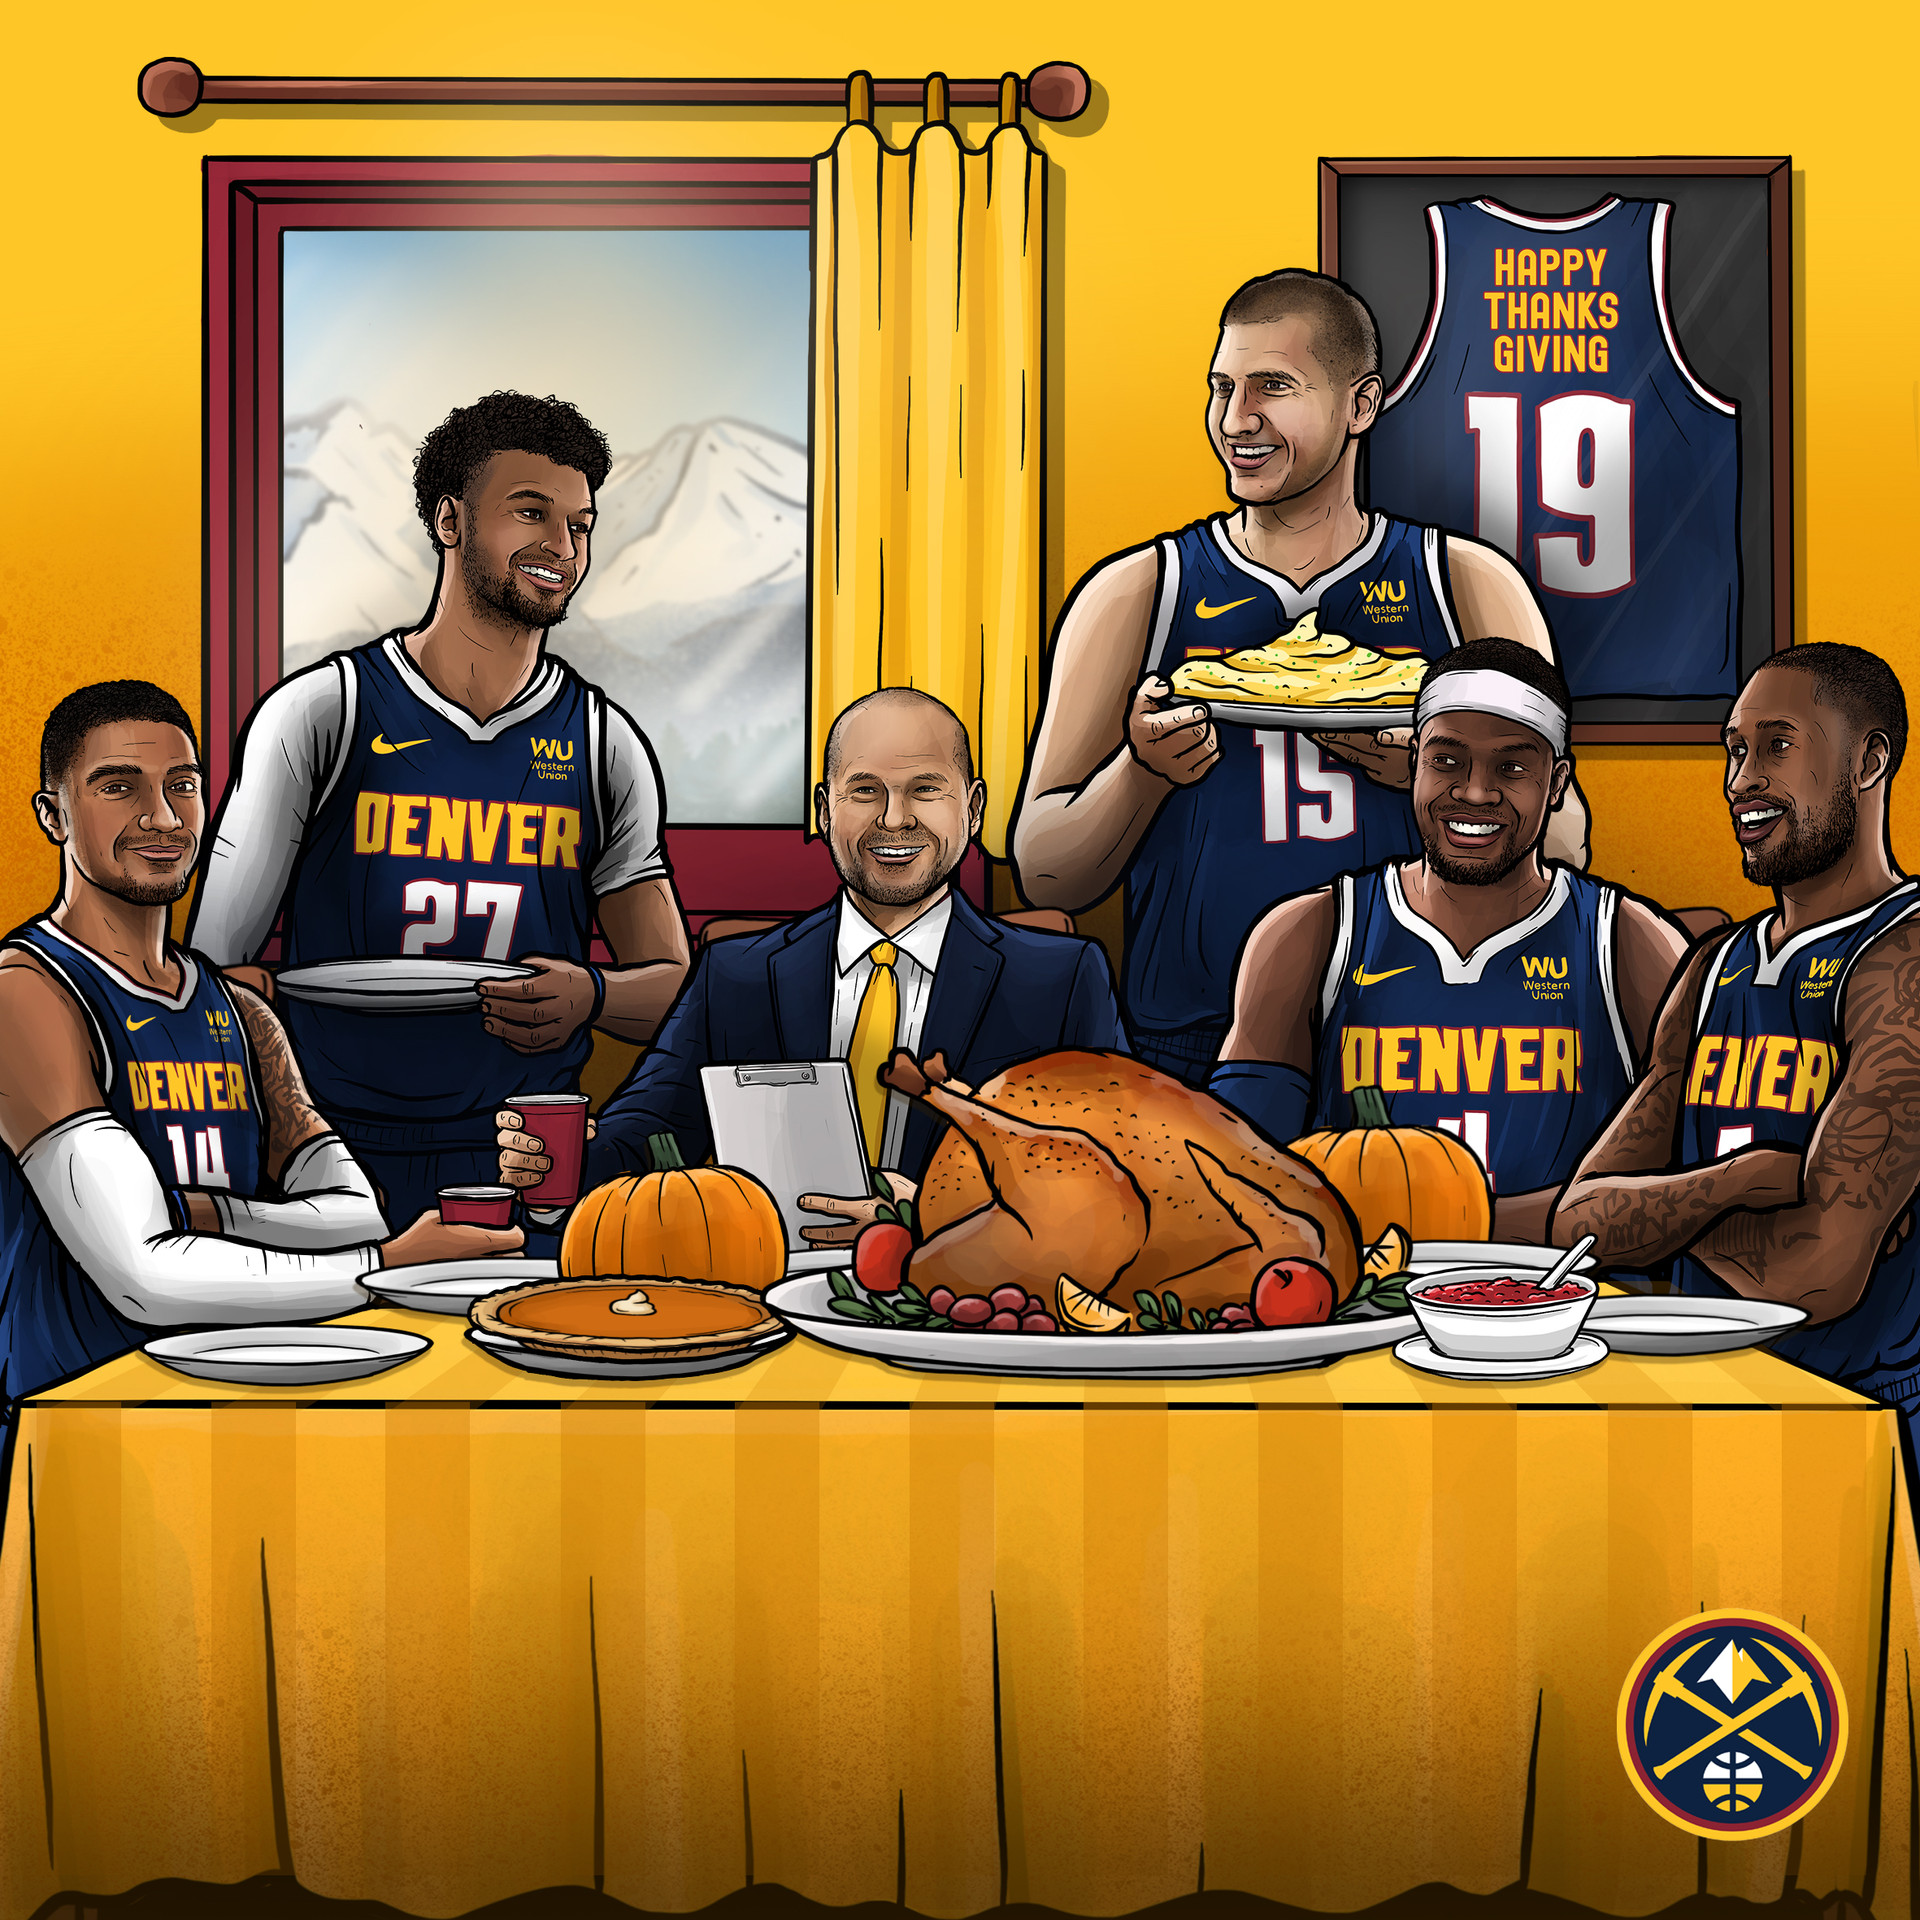 Nuggets_Thanksgiving_Illustration_V1.jpg